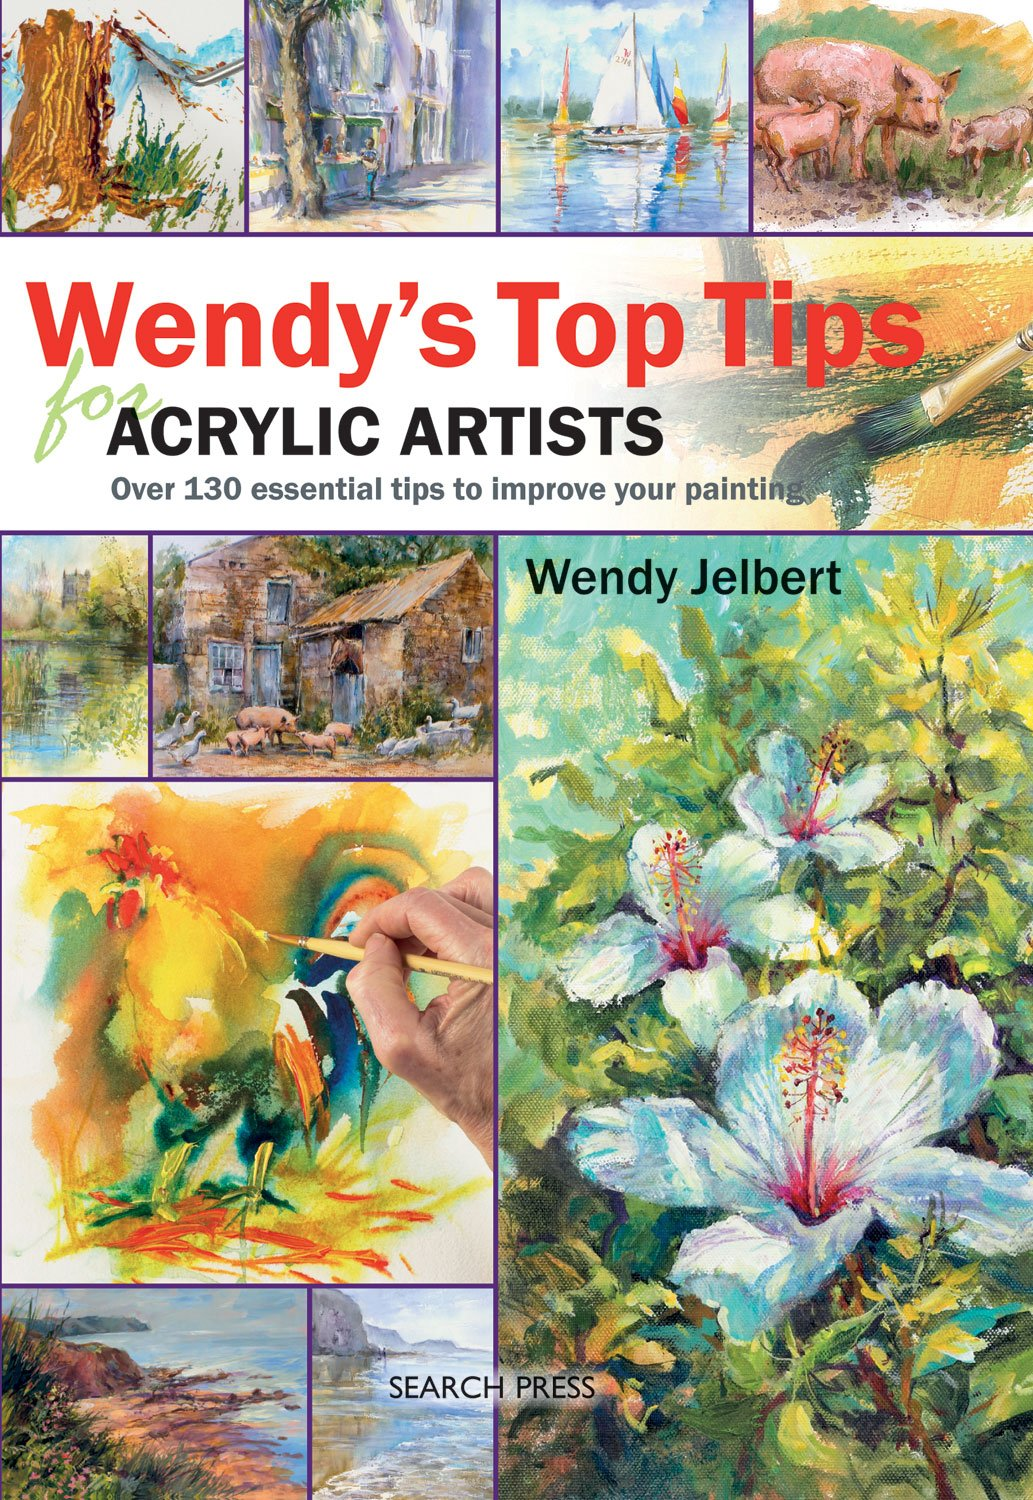 Wendy's Top Tips for Acrylic Artists: Over 130 Essential Tips to Improve Your Painting ebook